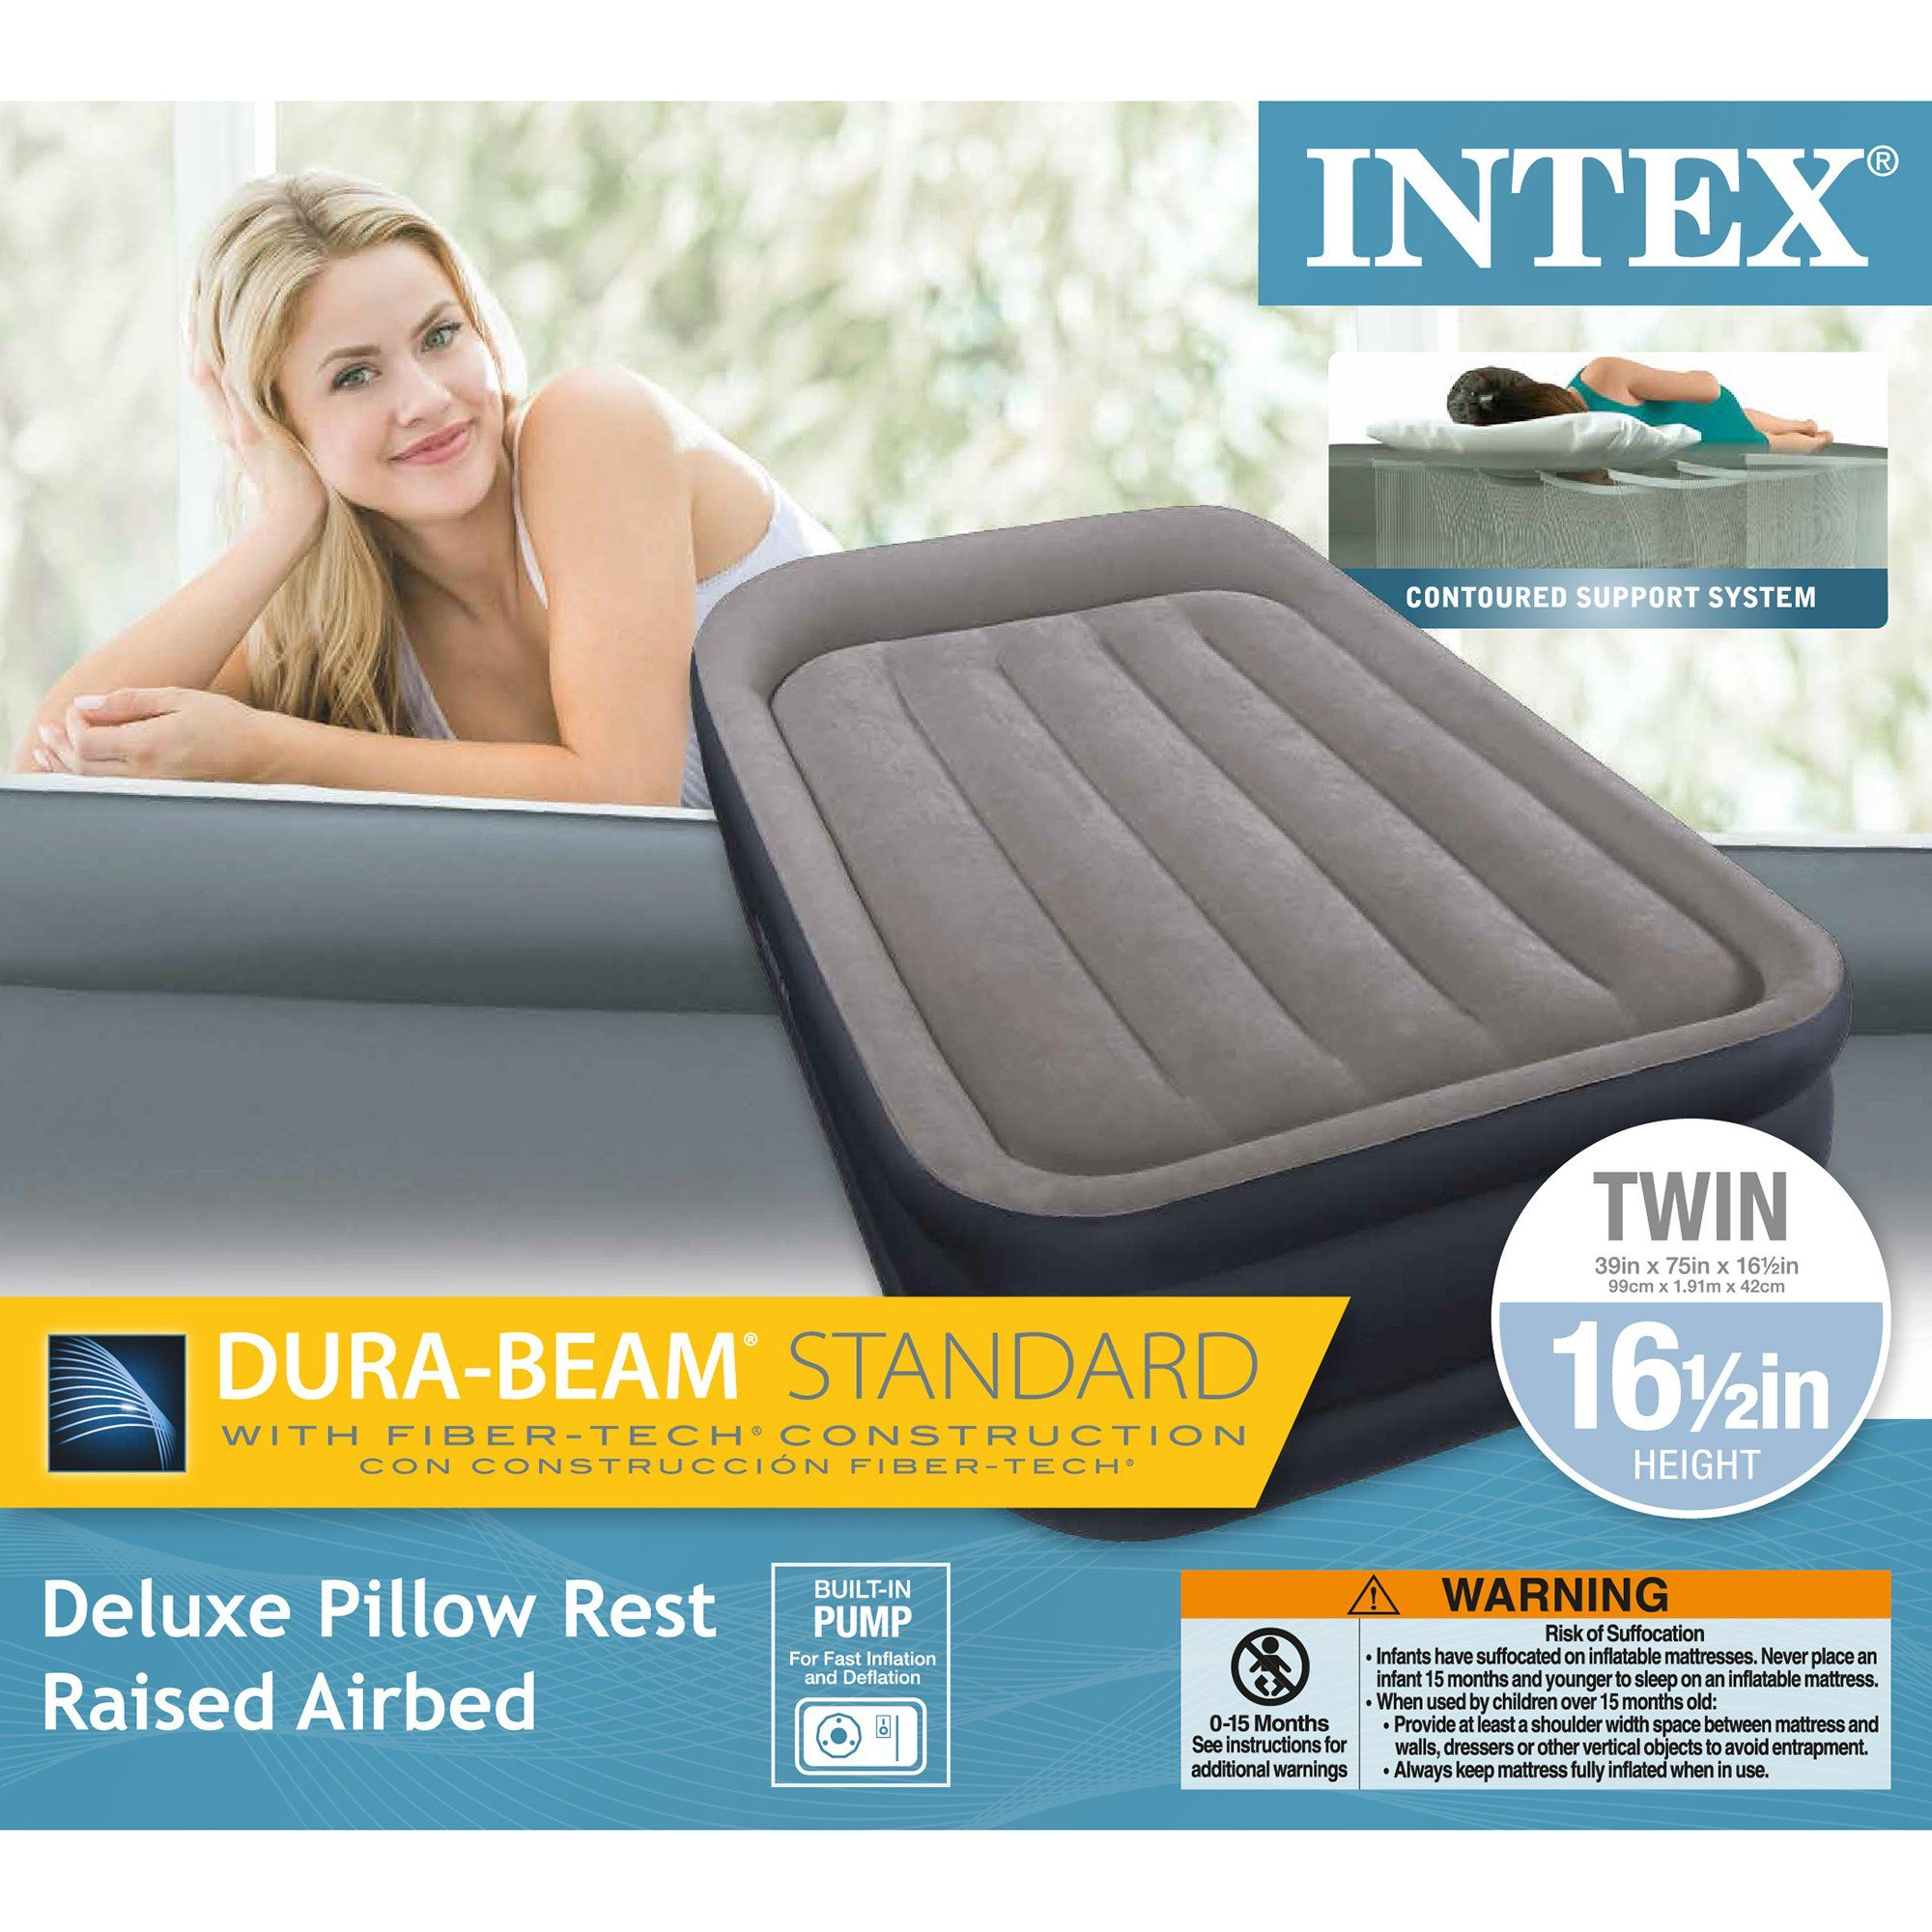 Intex Twin Sized Deluxe Pillow Rest Airbed with FiberTech